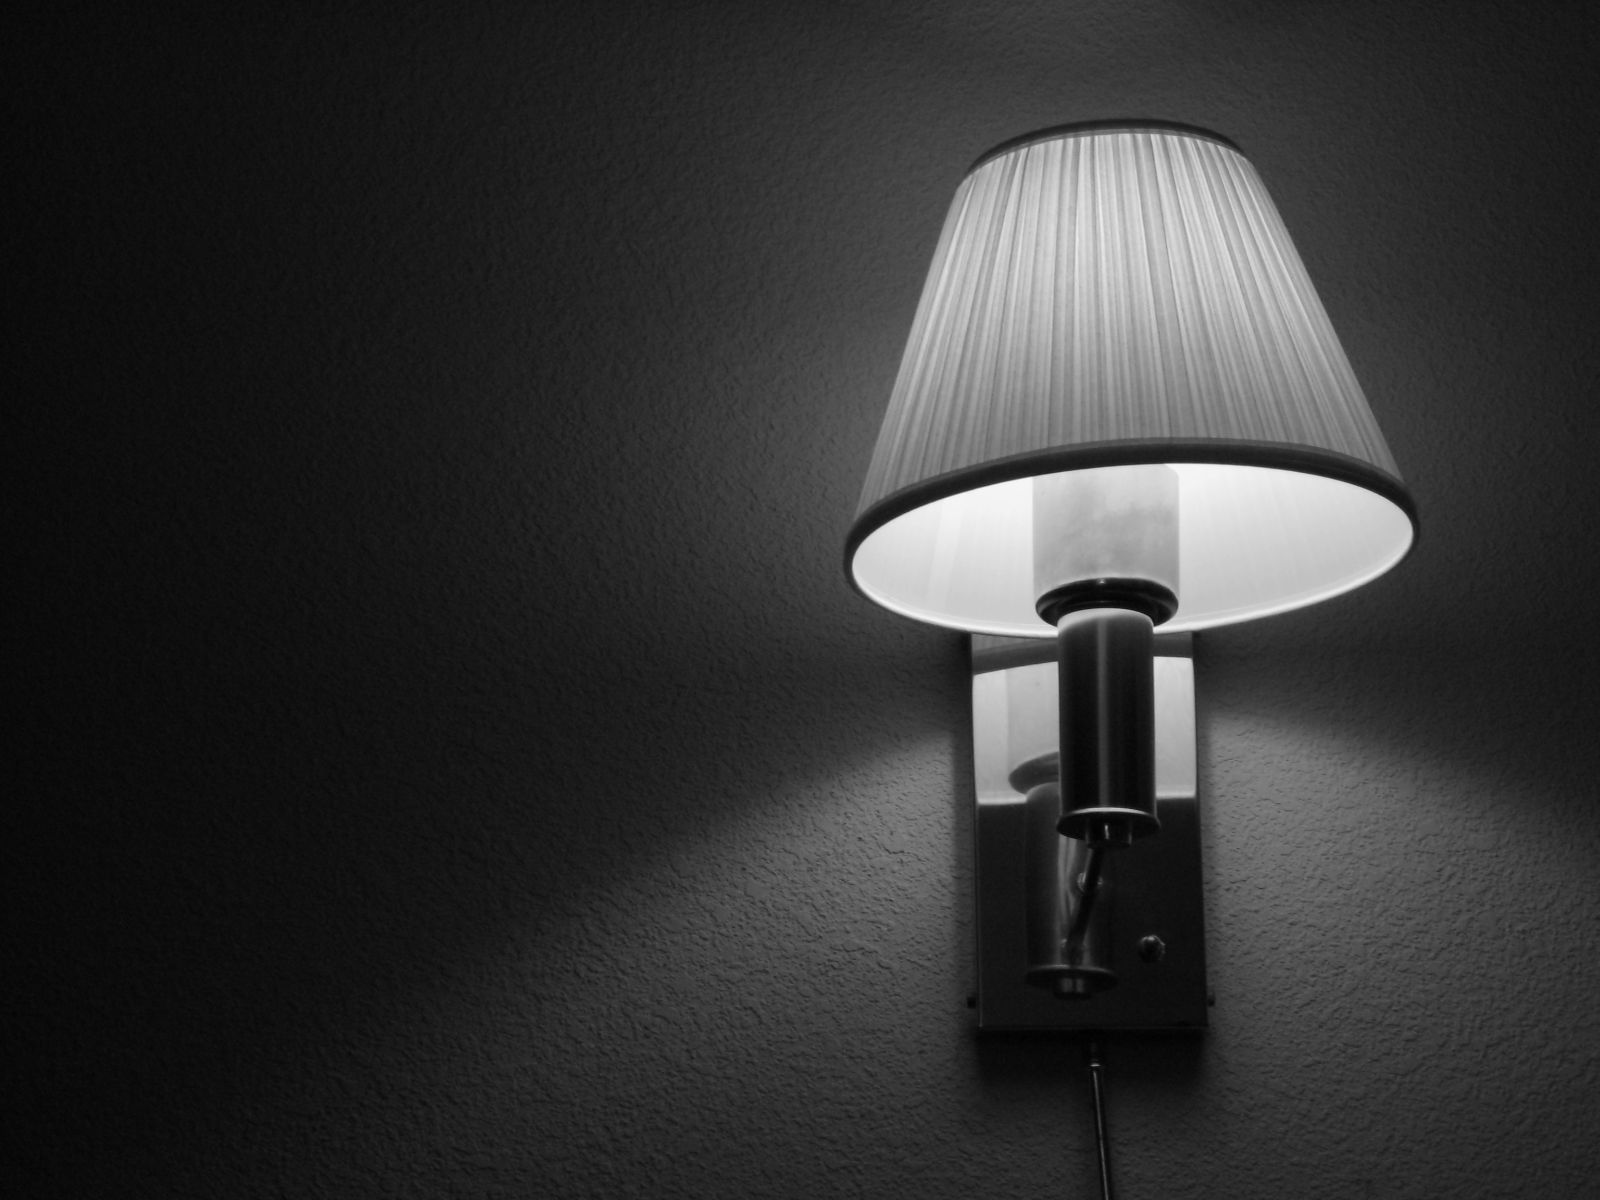 BnW Lamp Wallpaper by Vyrn BnW Lamp Wallpaper by Vyrn